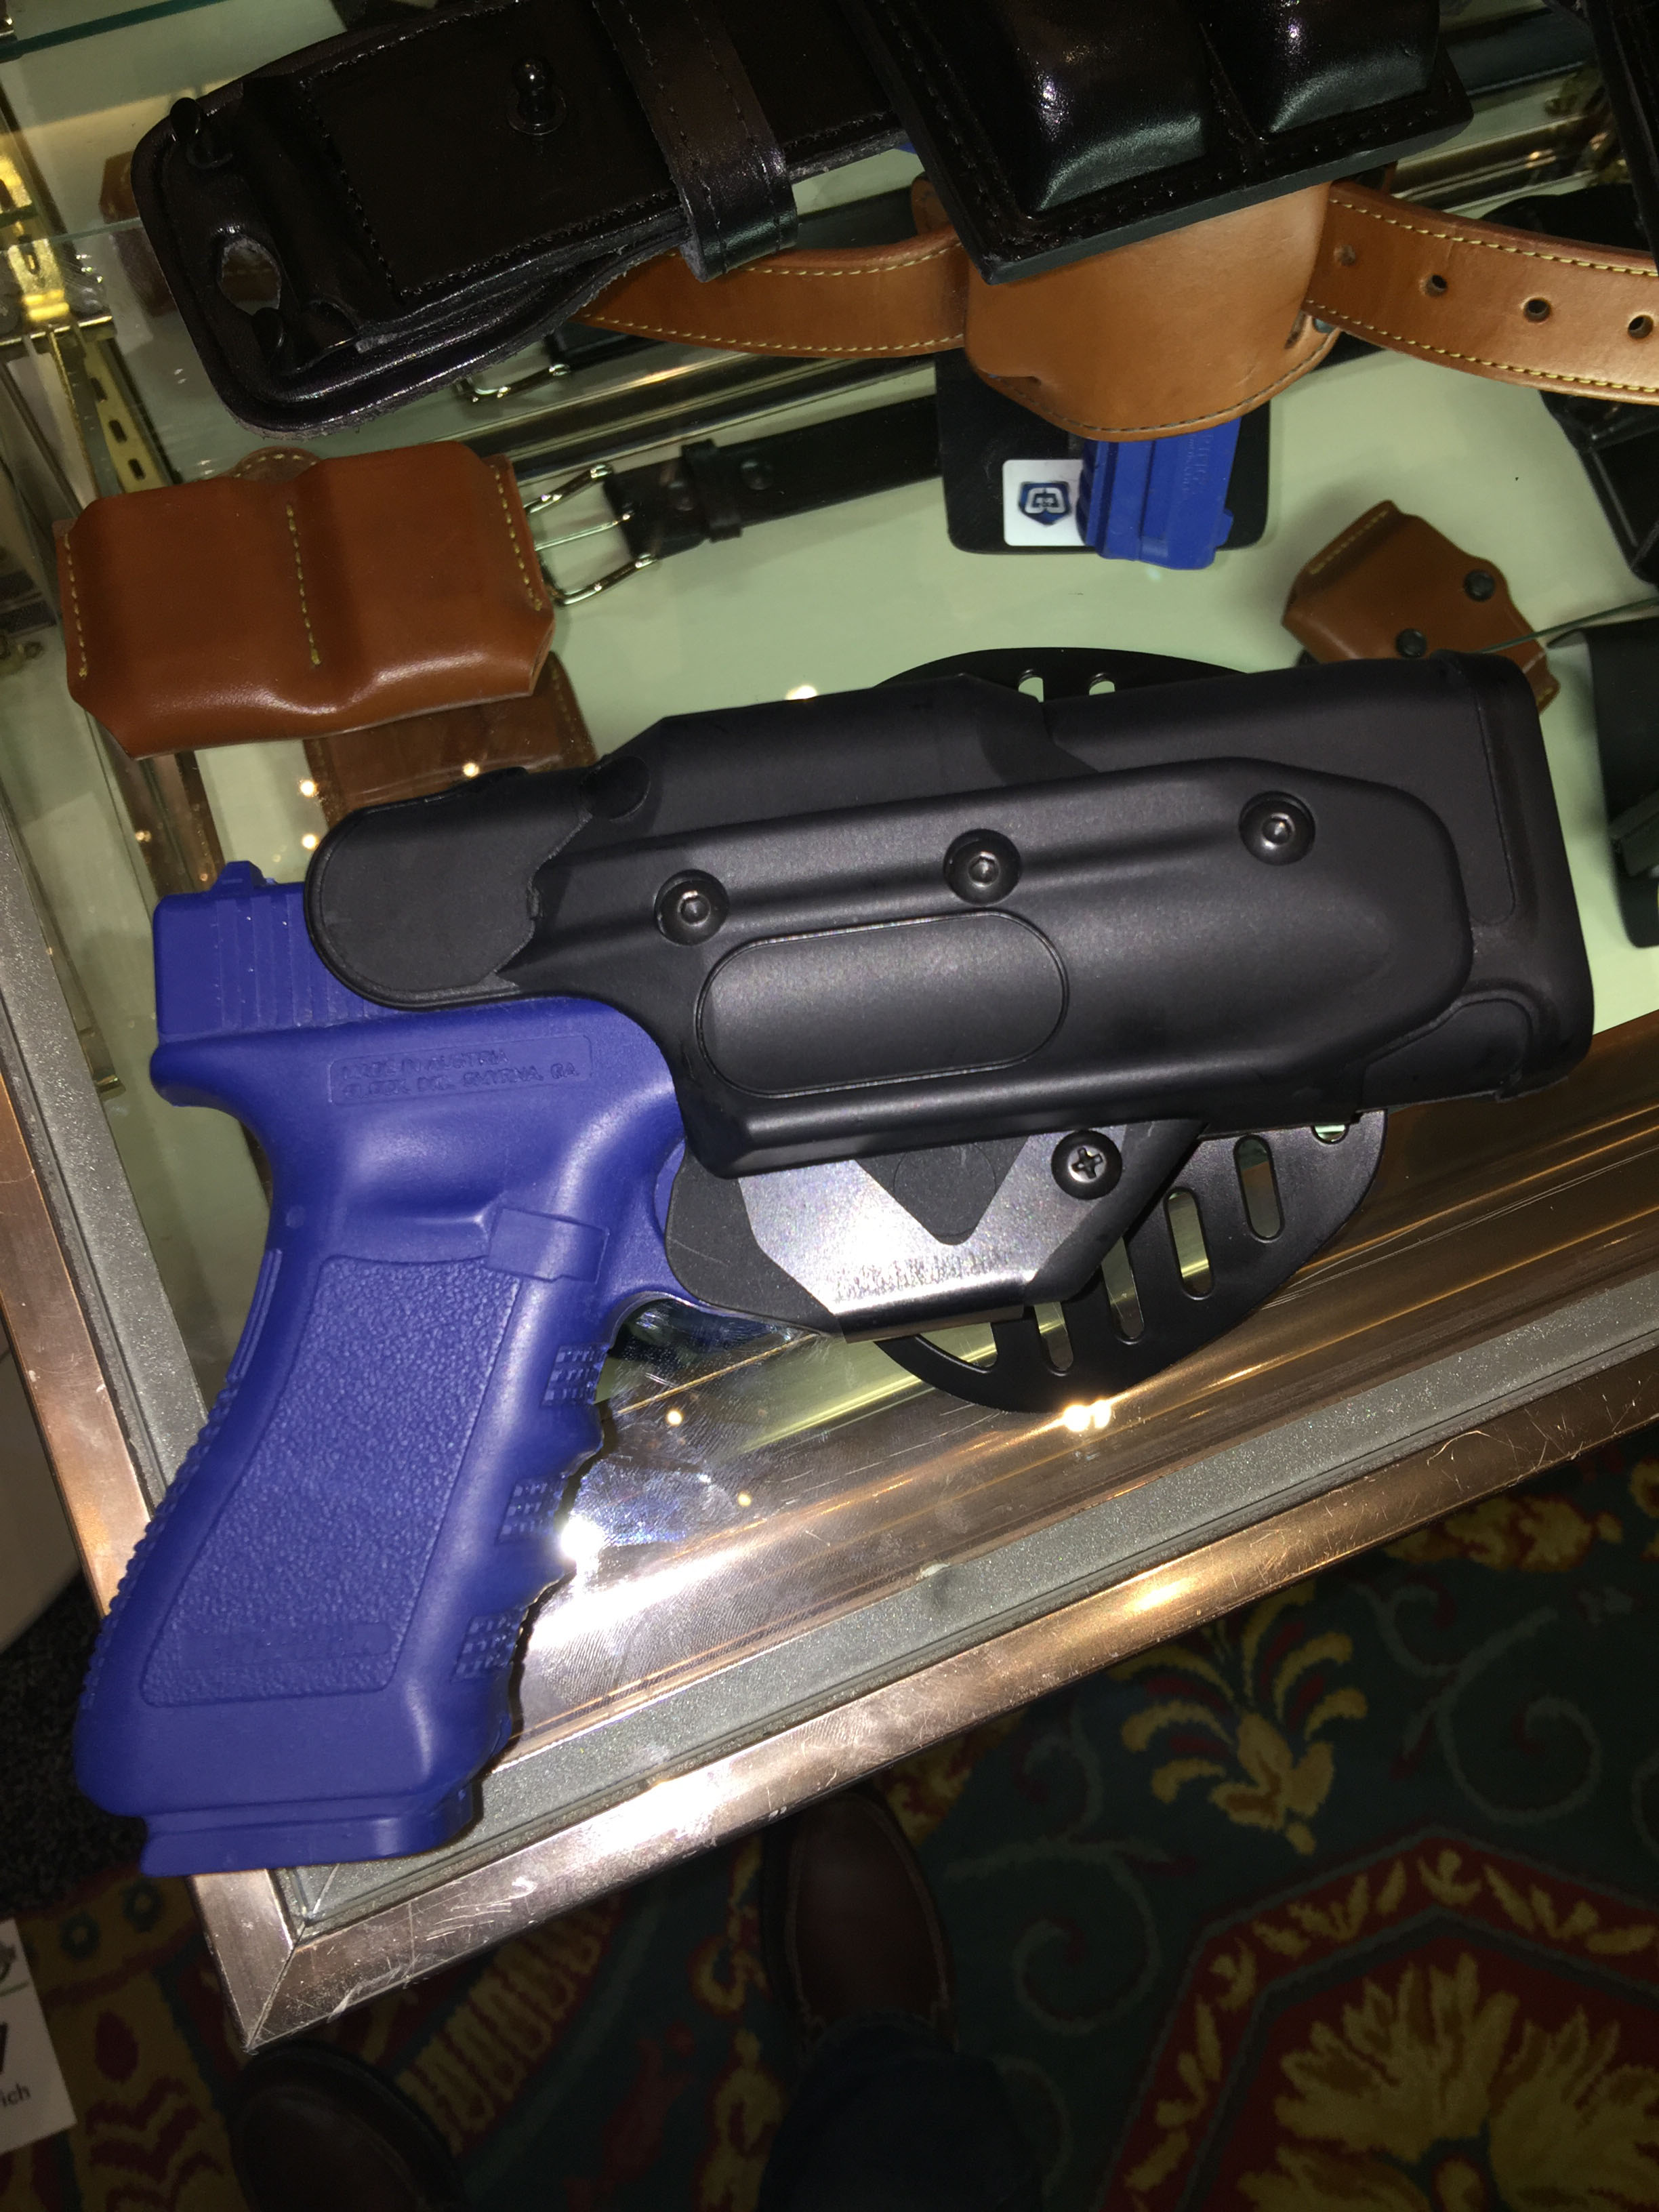 New Gould & Goodrich open top mag cases and XCalibur concealment holster at the 2017 SHOT Show